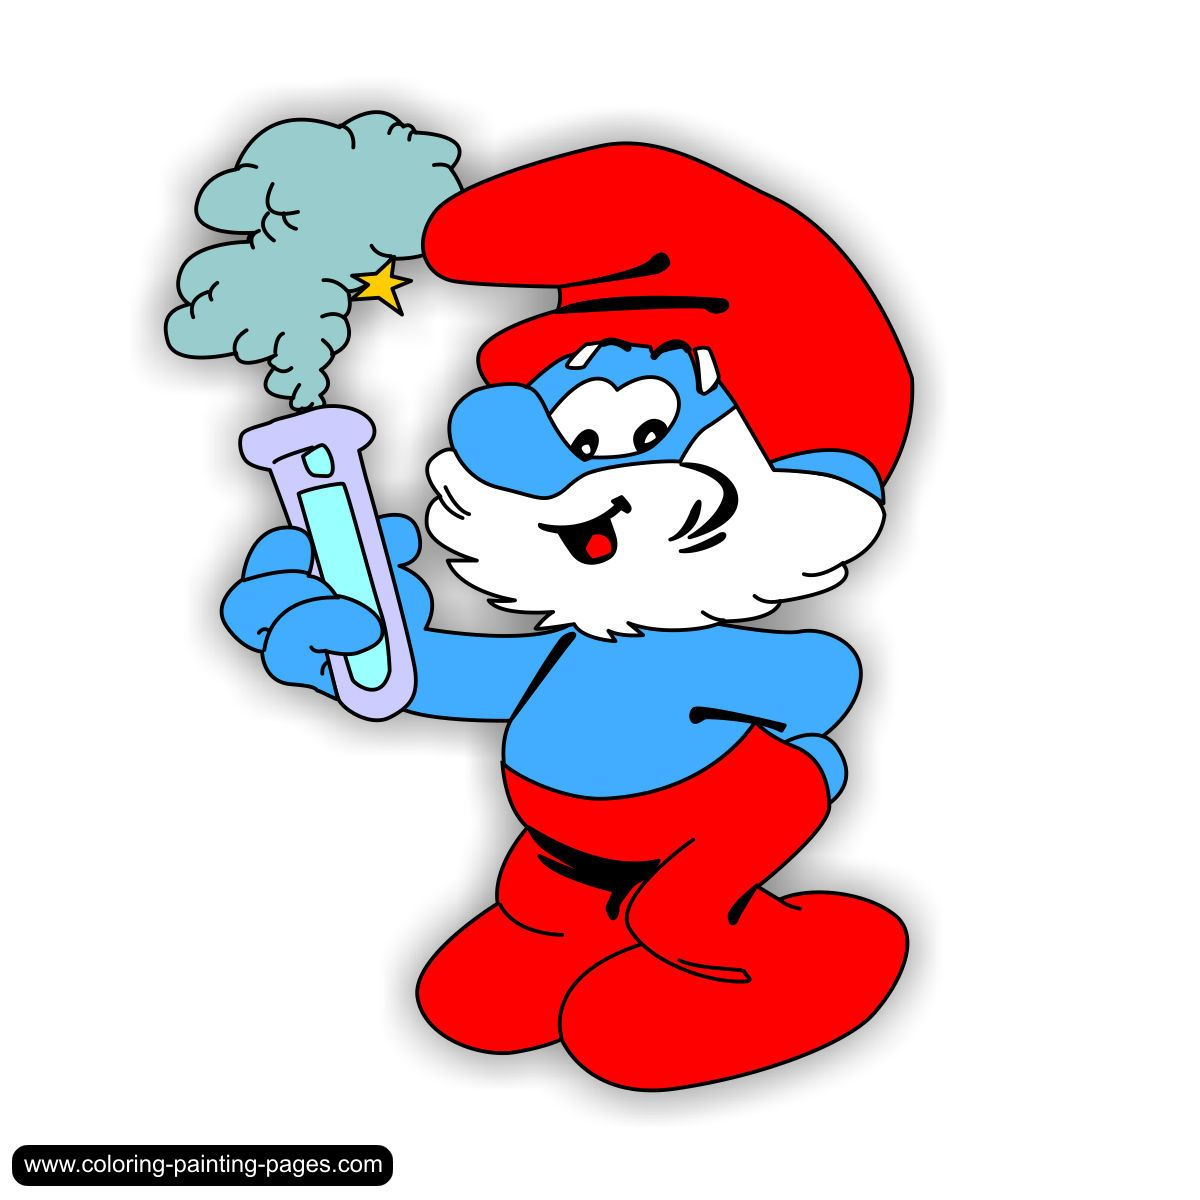 Coloring pages Smurfs- free downloads | This and that | Pinterest ...